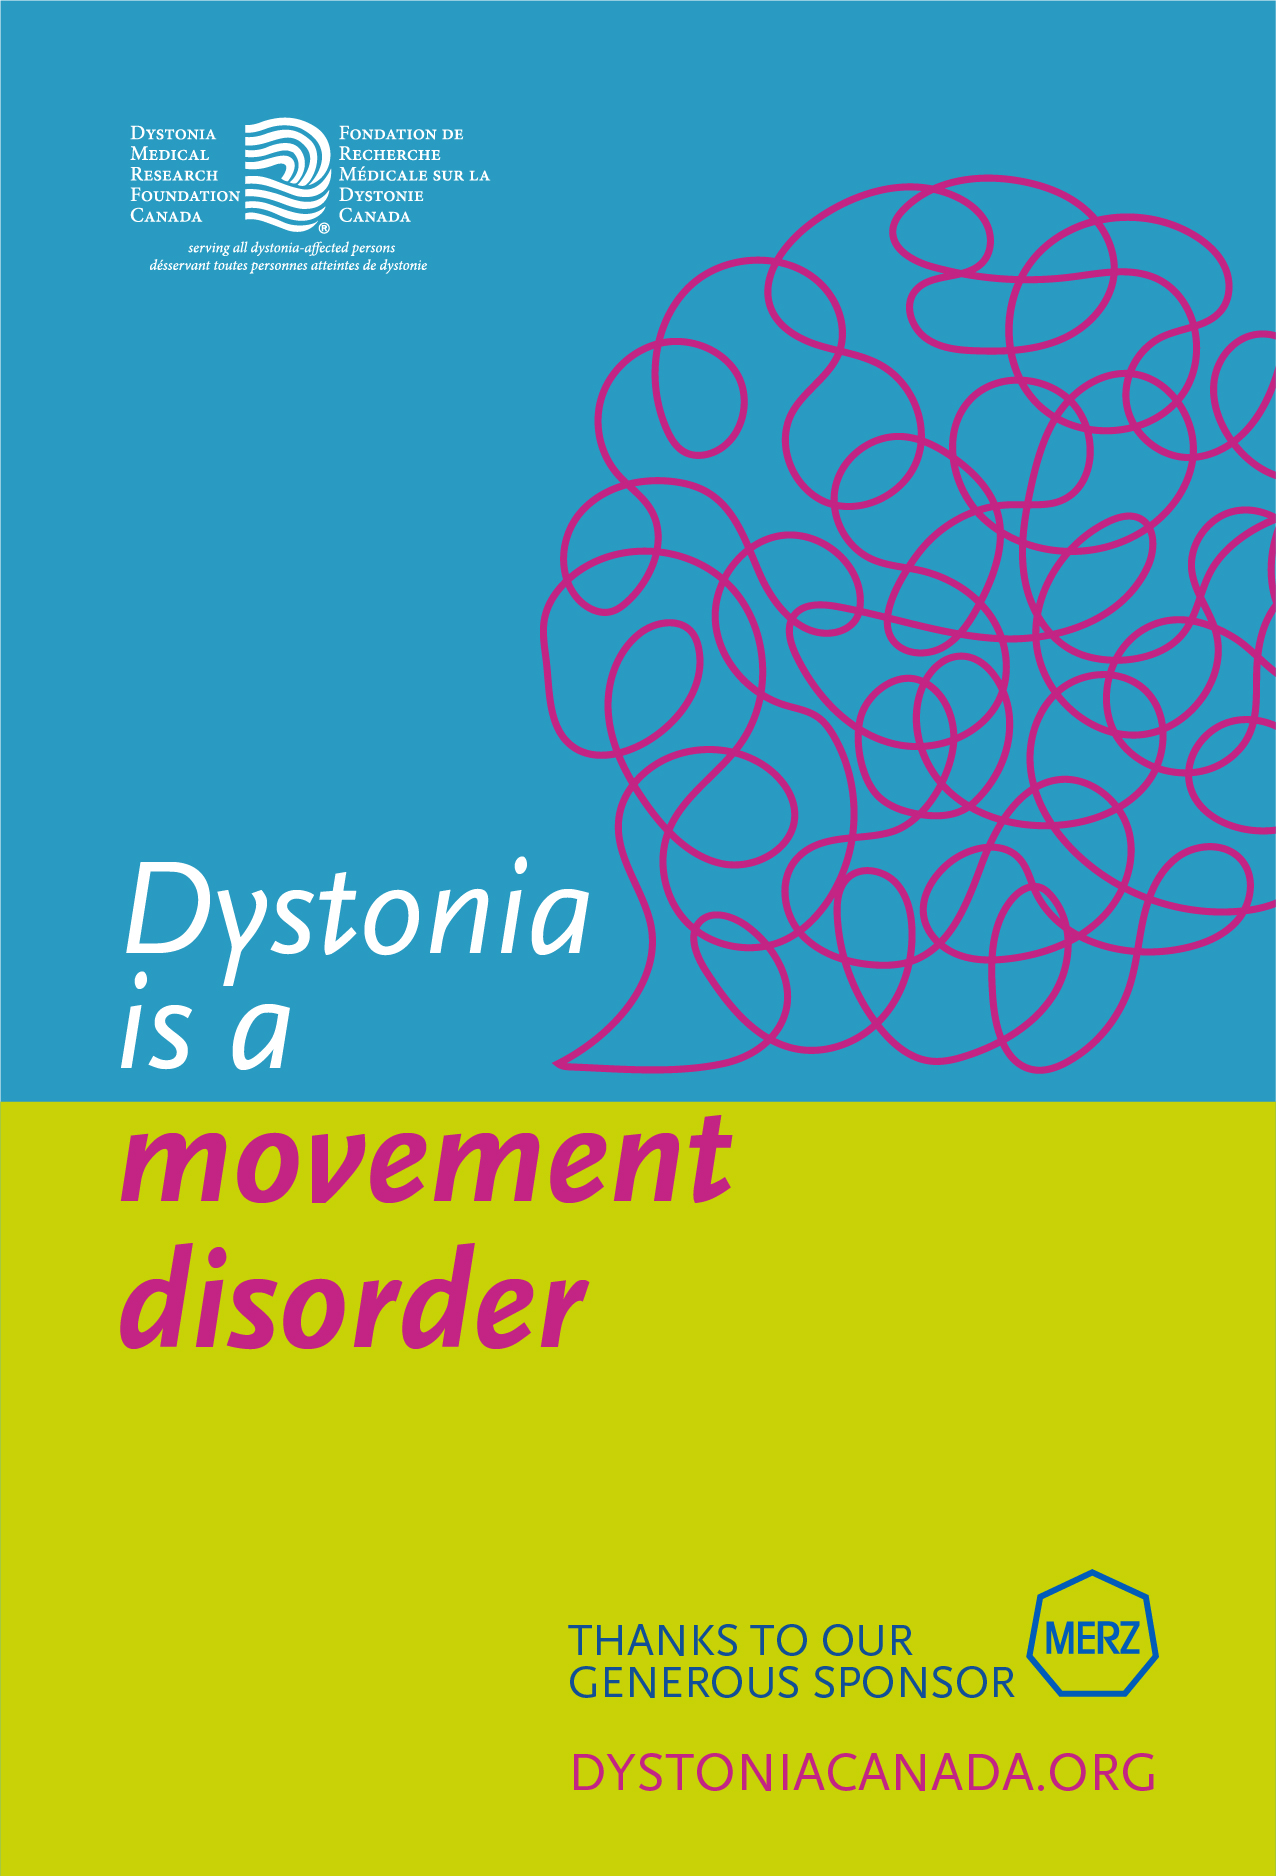 dystonia is a movement disorder poster